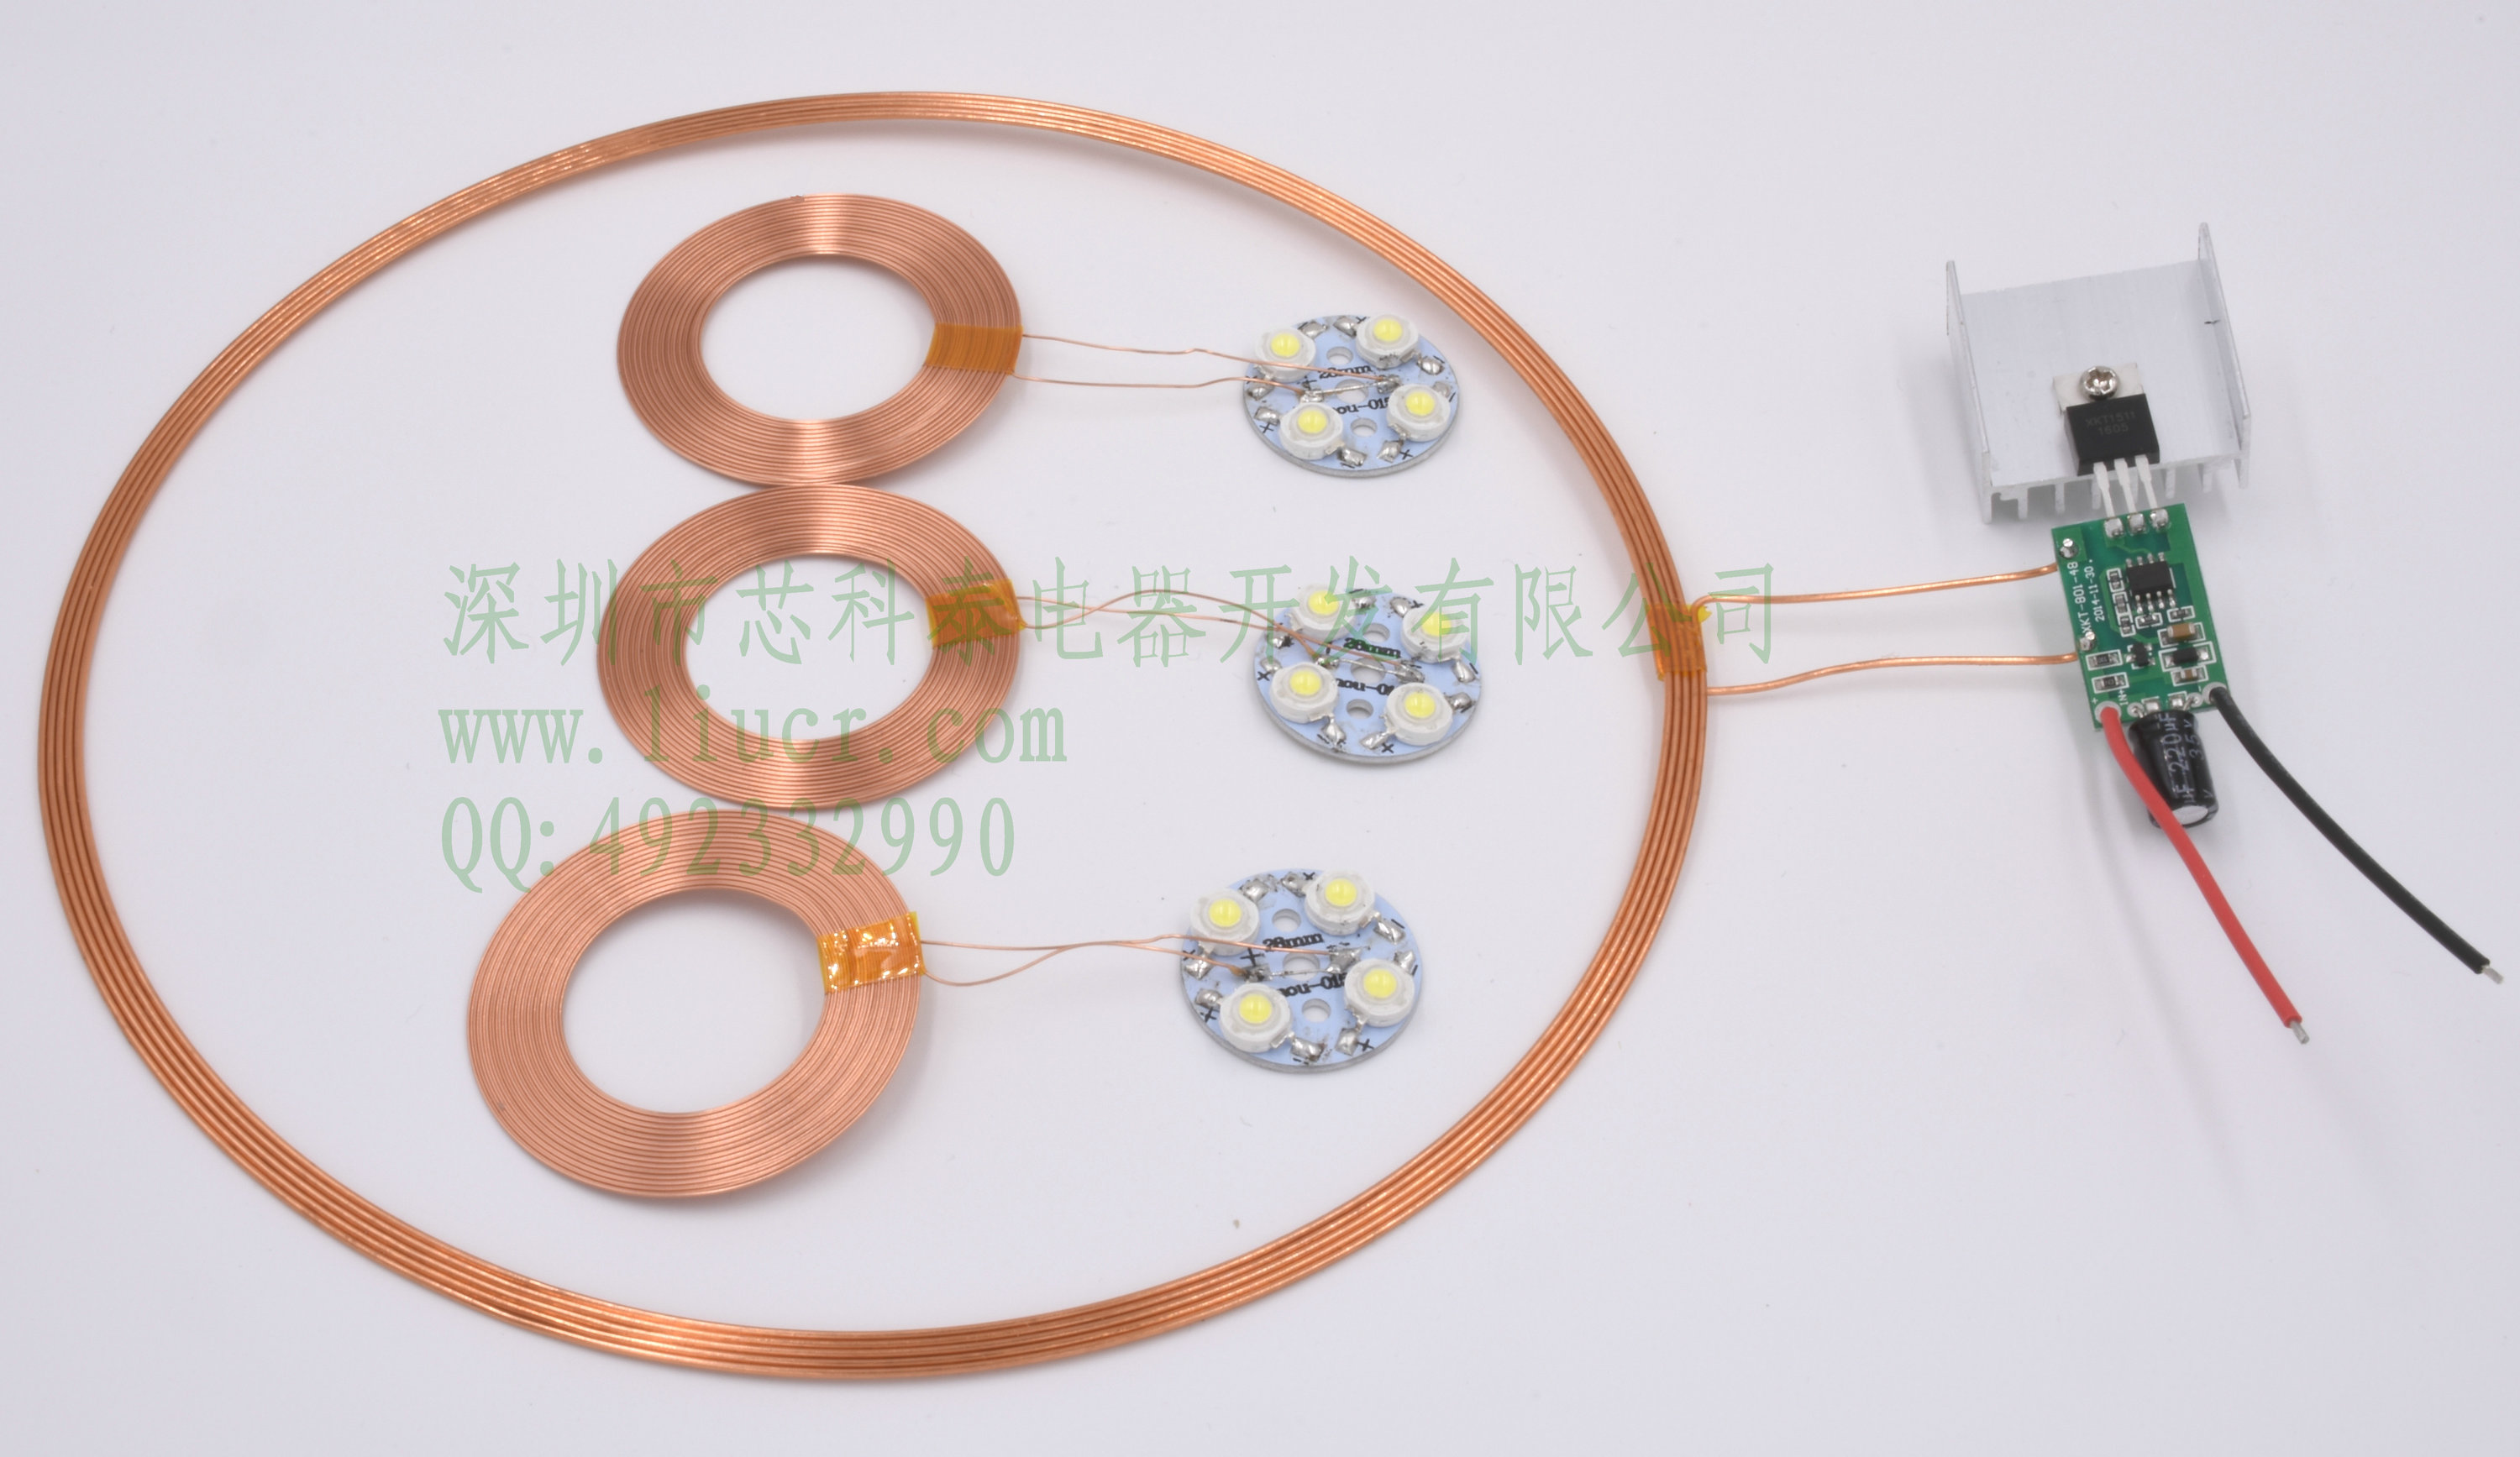 300mm Wireless Power Supply Module, Wireless Charging Module, Wireless Transmission Module, XKT801-01 1 meter dc long distance wireless power supply charging module chip scheme wireless transmission module xkt801 05